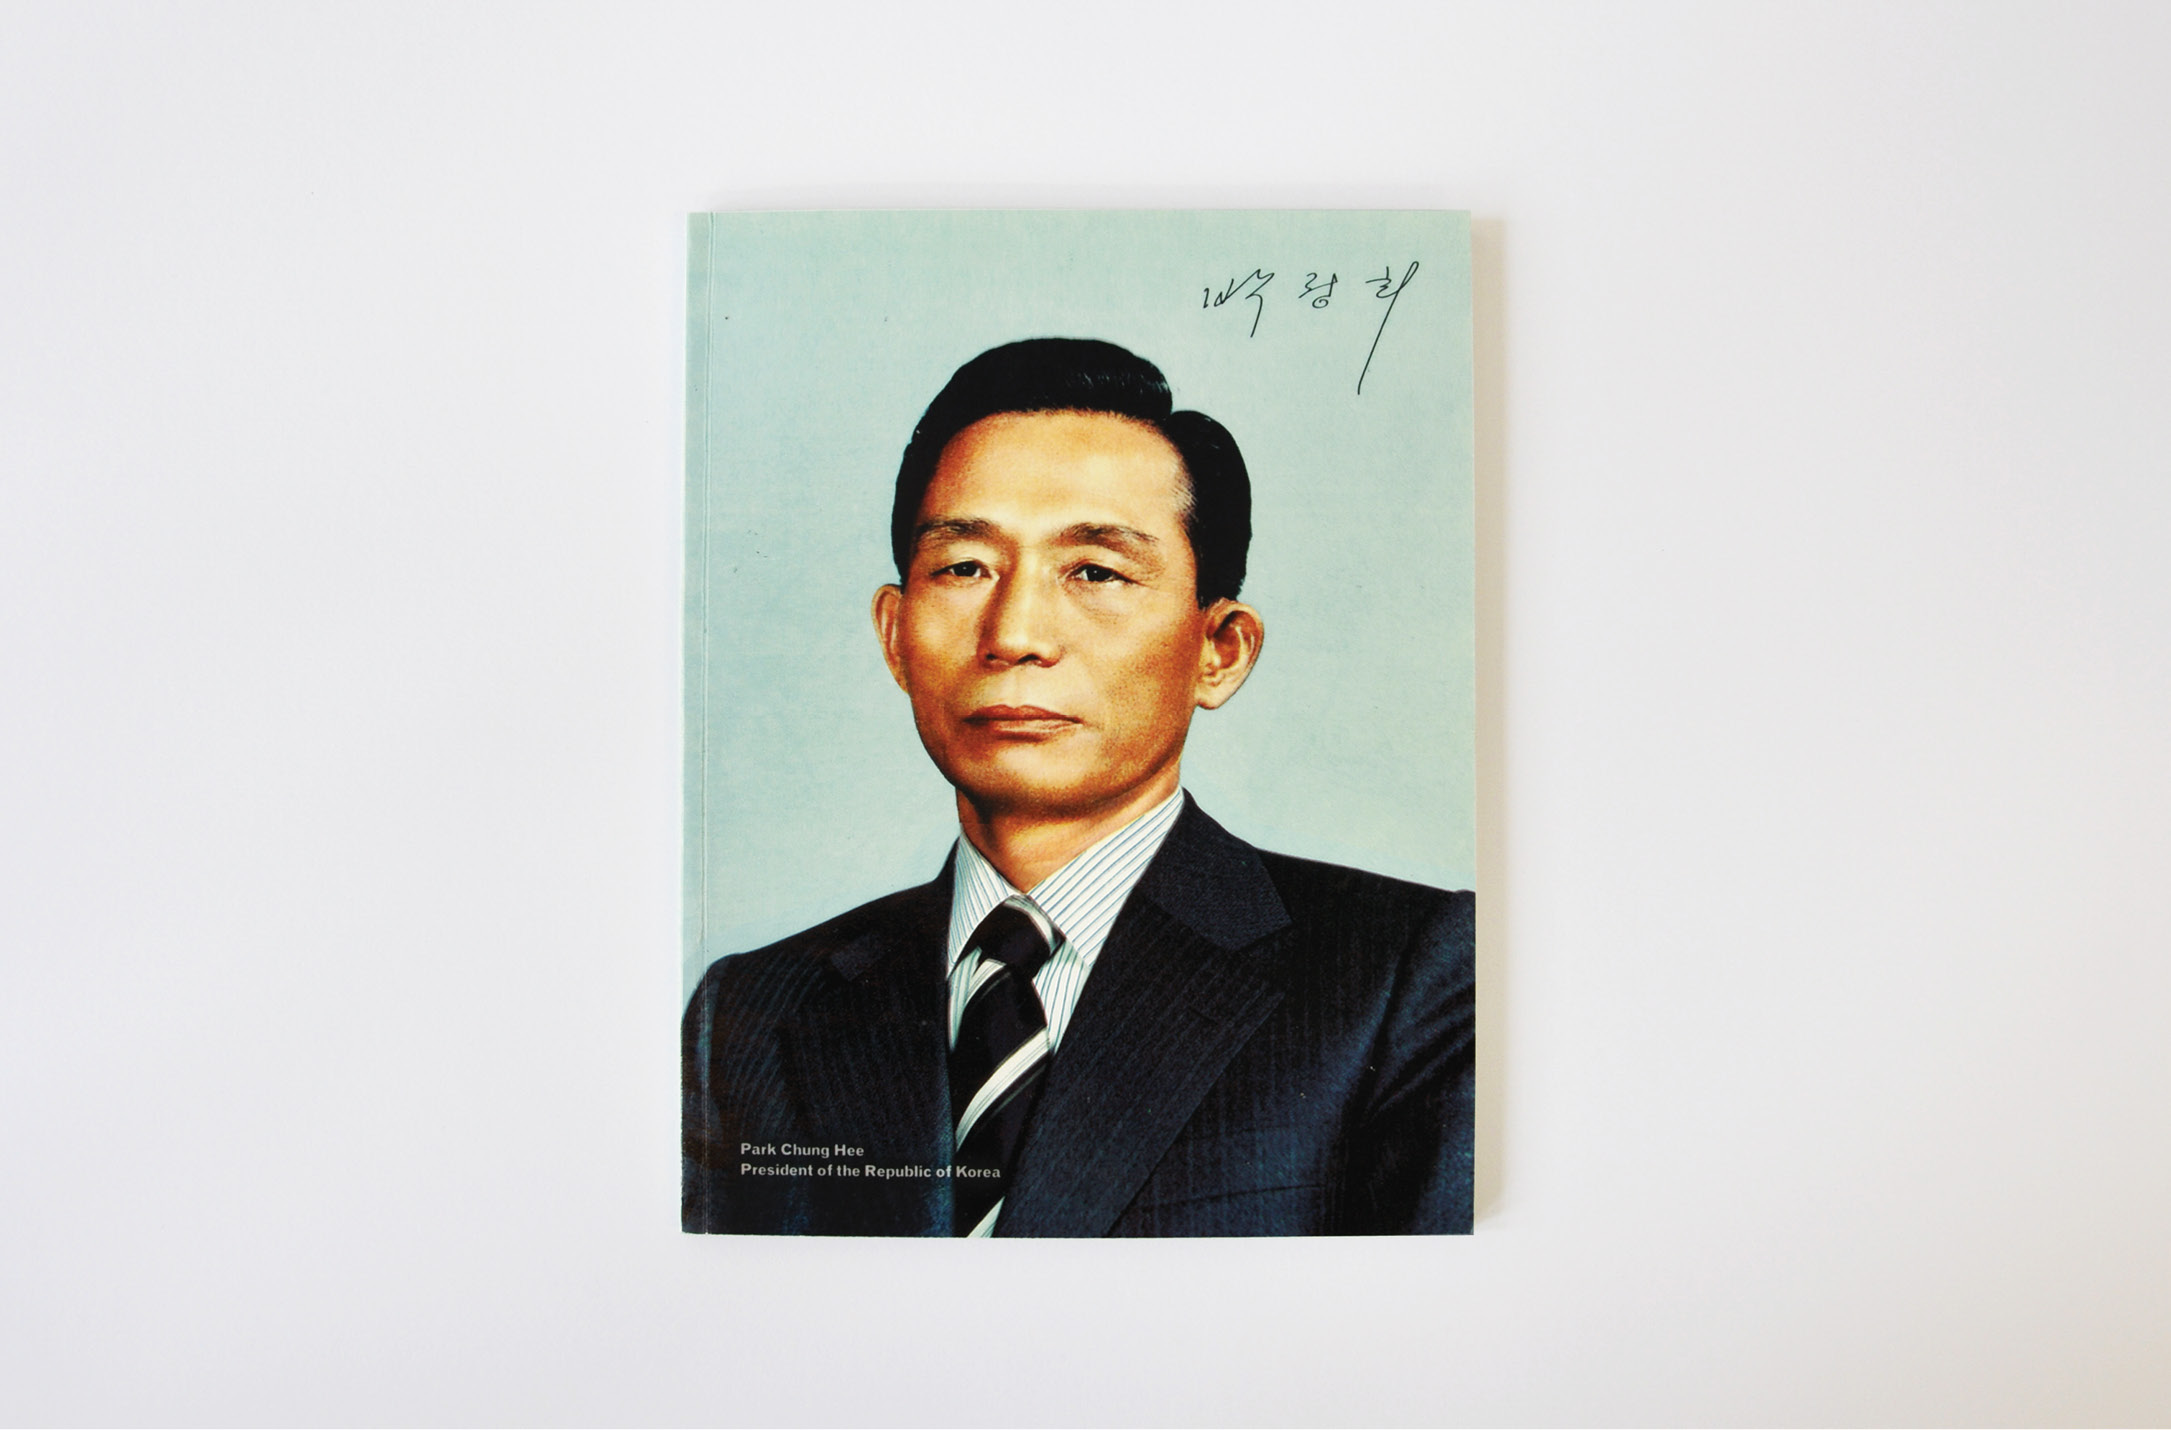 min hee lee the man behind the miracle on the han 2012 a book on the economic and industrialization policies of former south korean president park chung hee